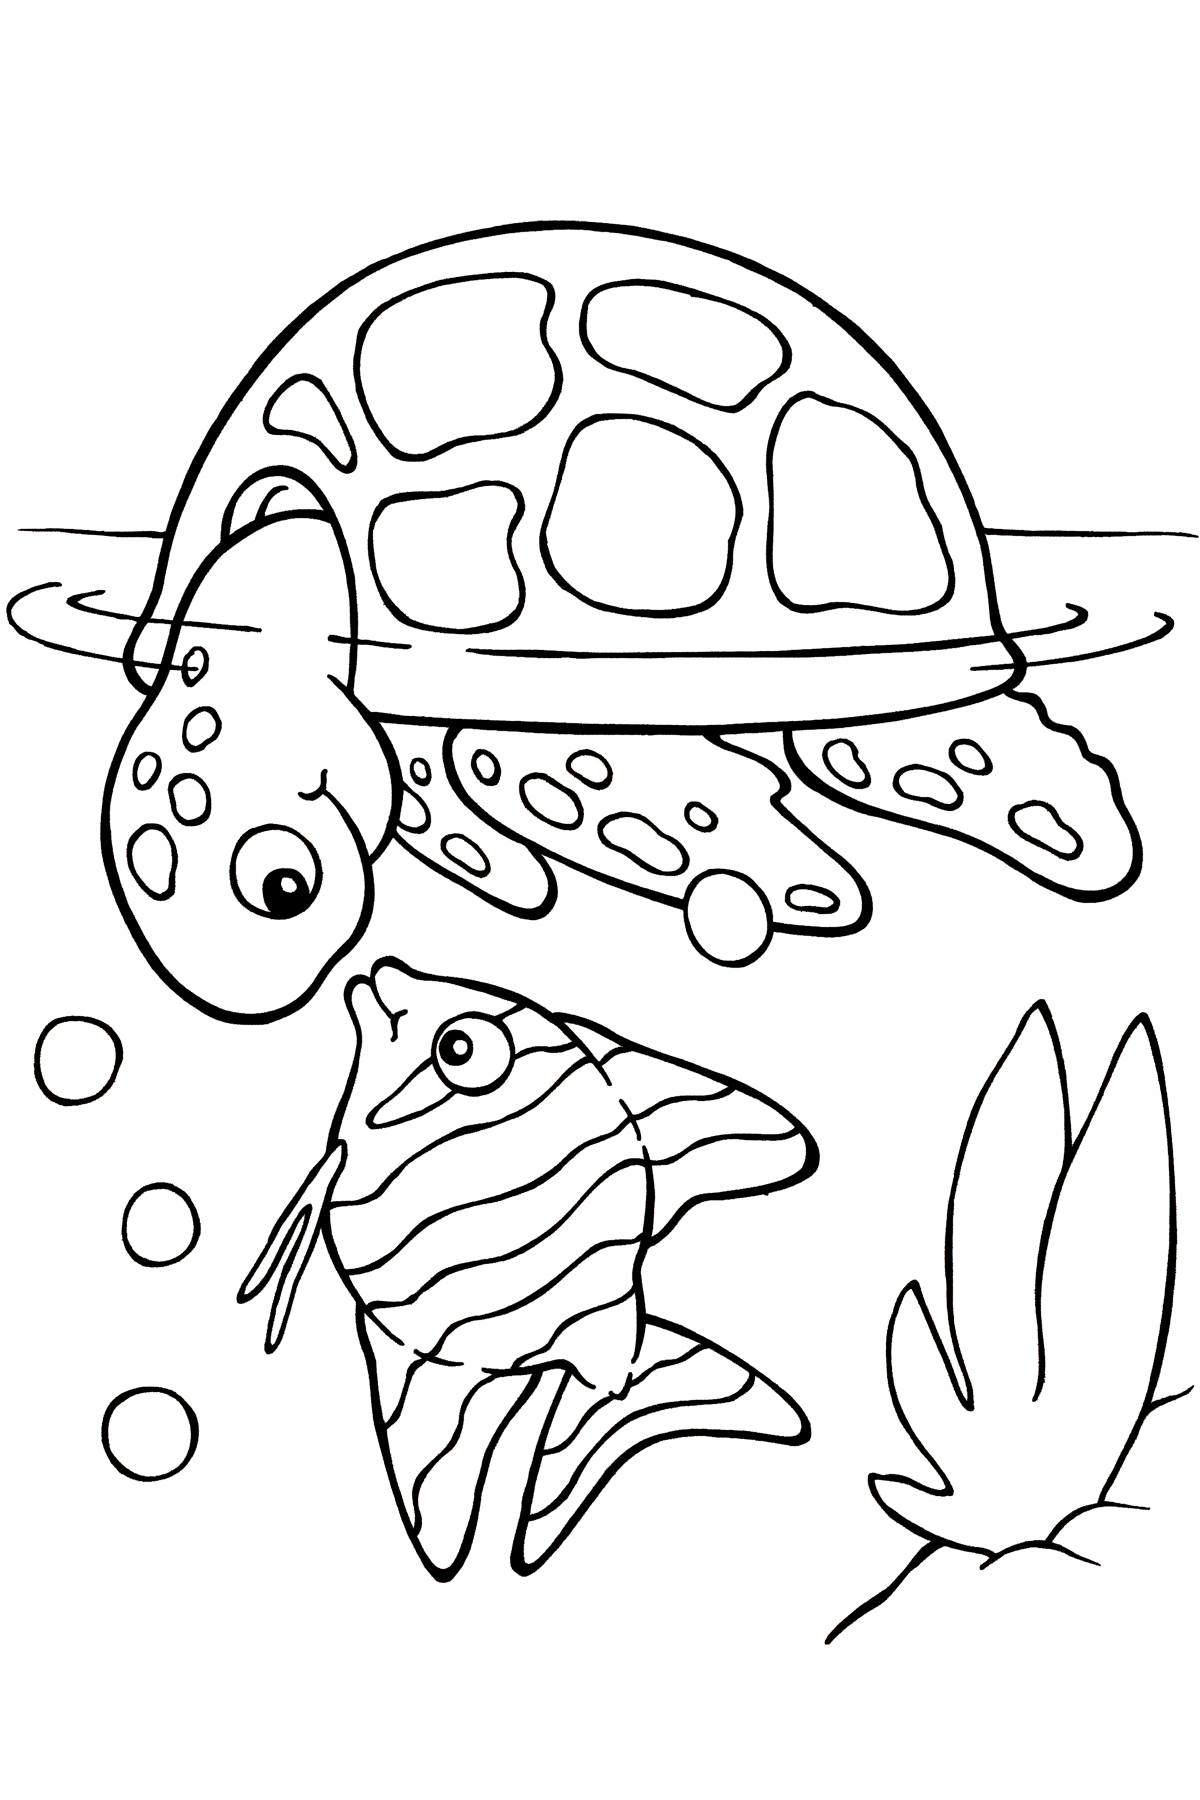 Sea turtle coloring pages to download and print for free | coloring pages for sea animals